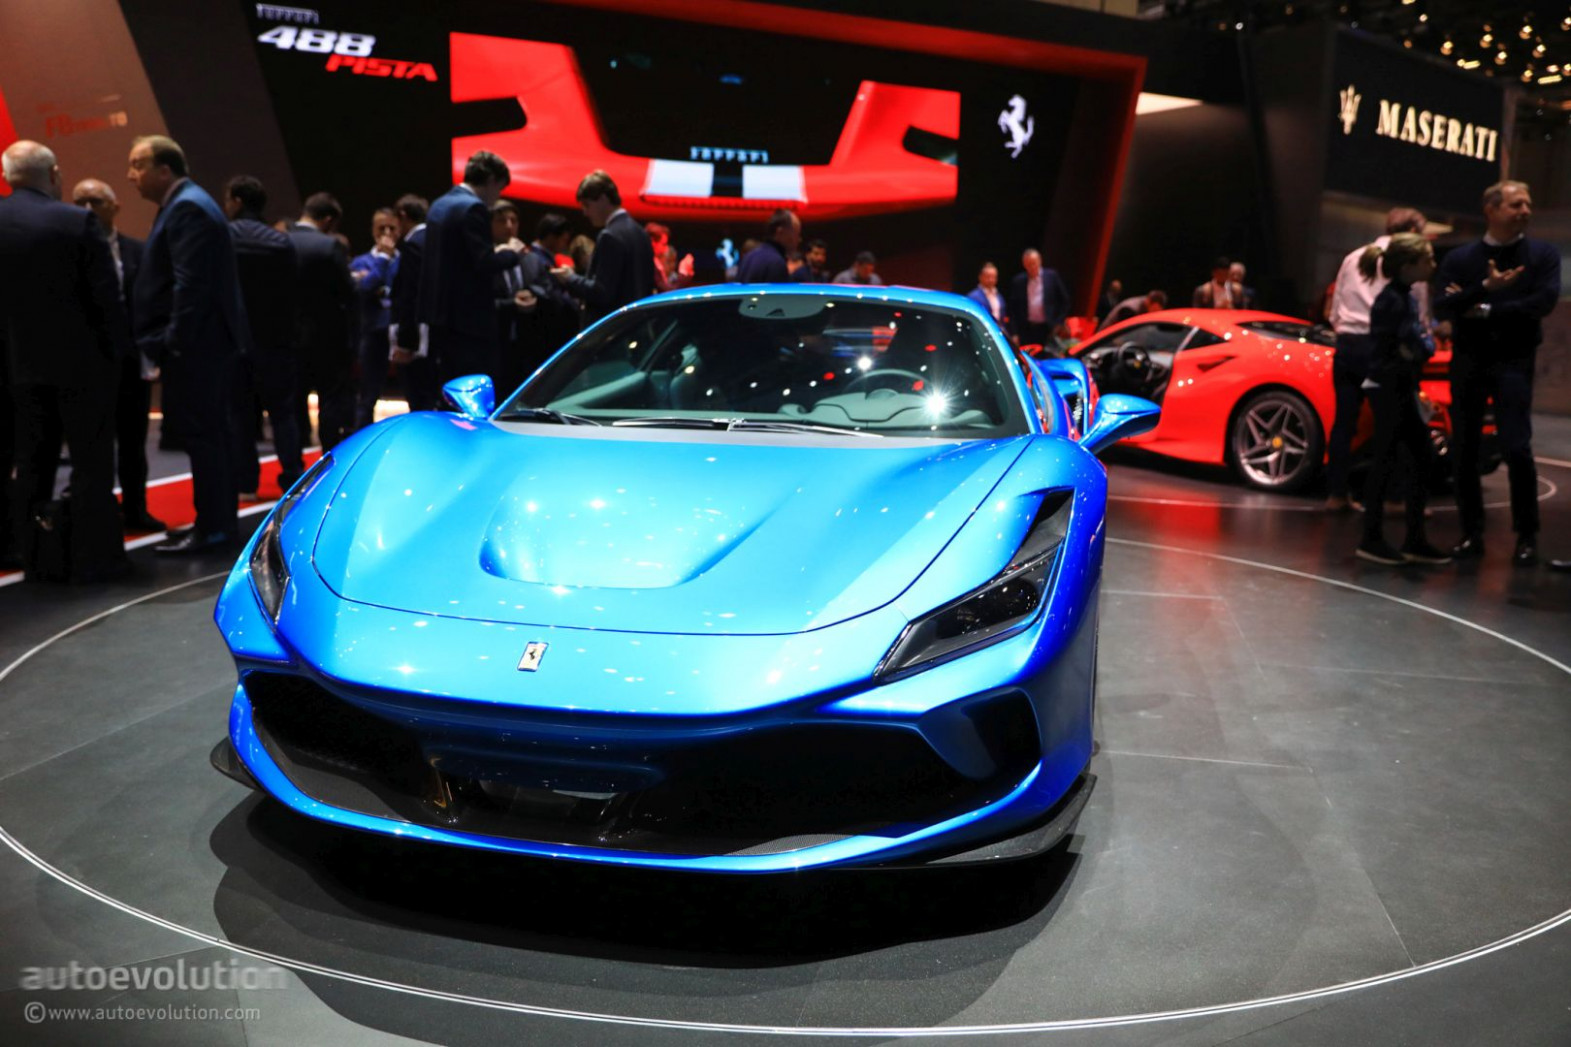 8 Ferrari F8 Tributo to Make UK Track Debut at Brands Hatch ..